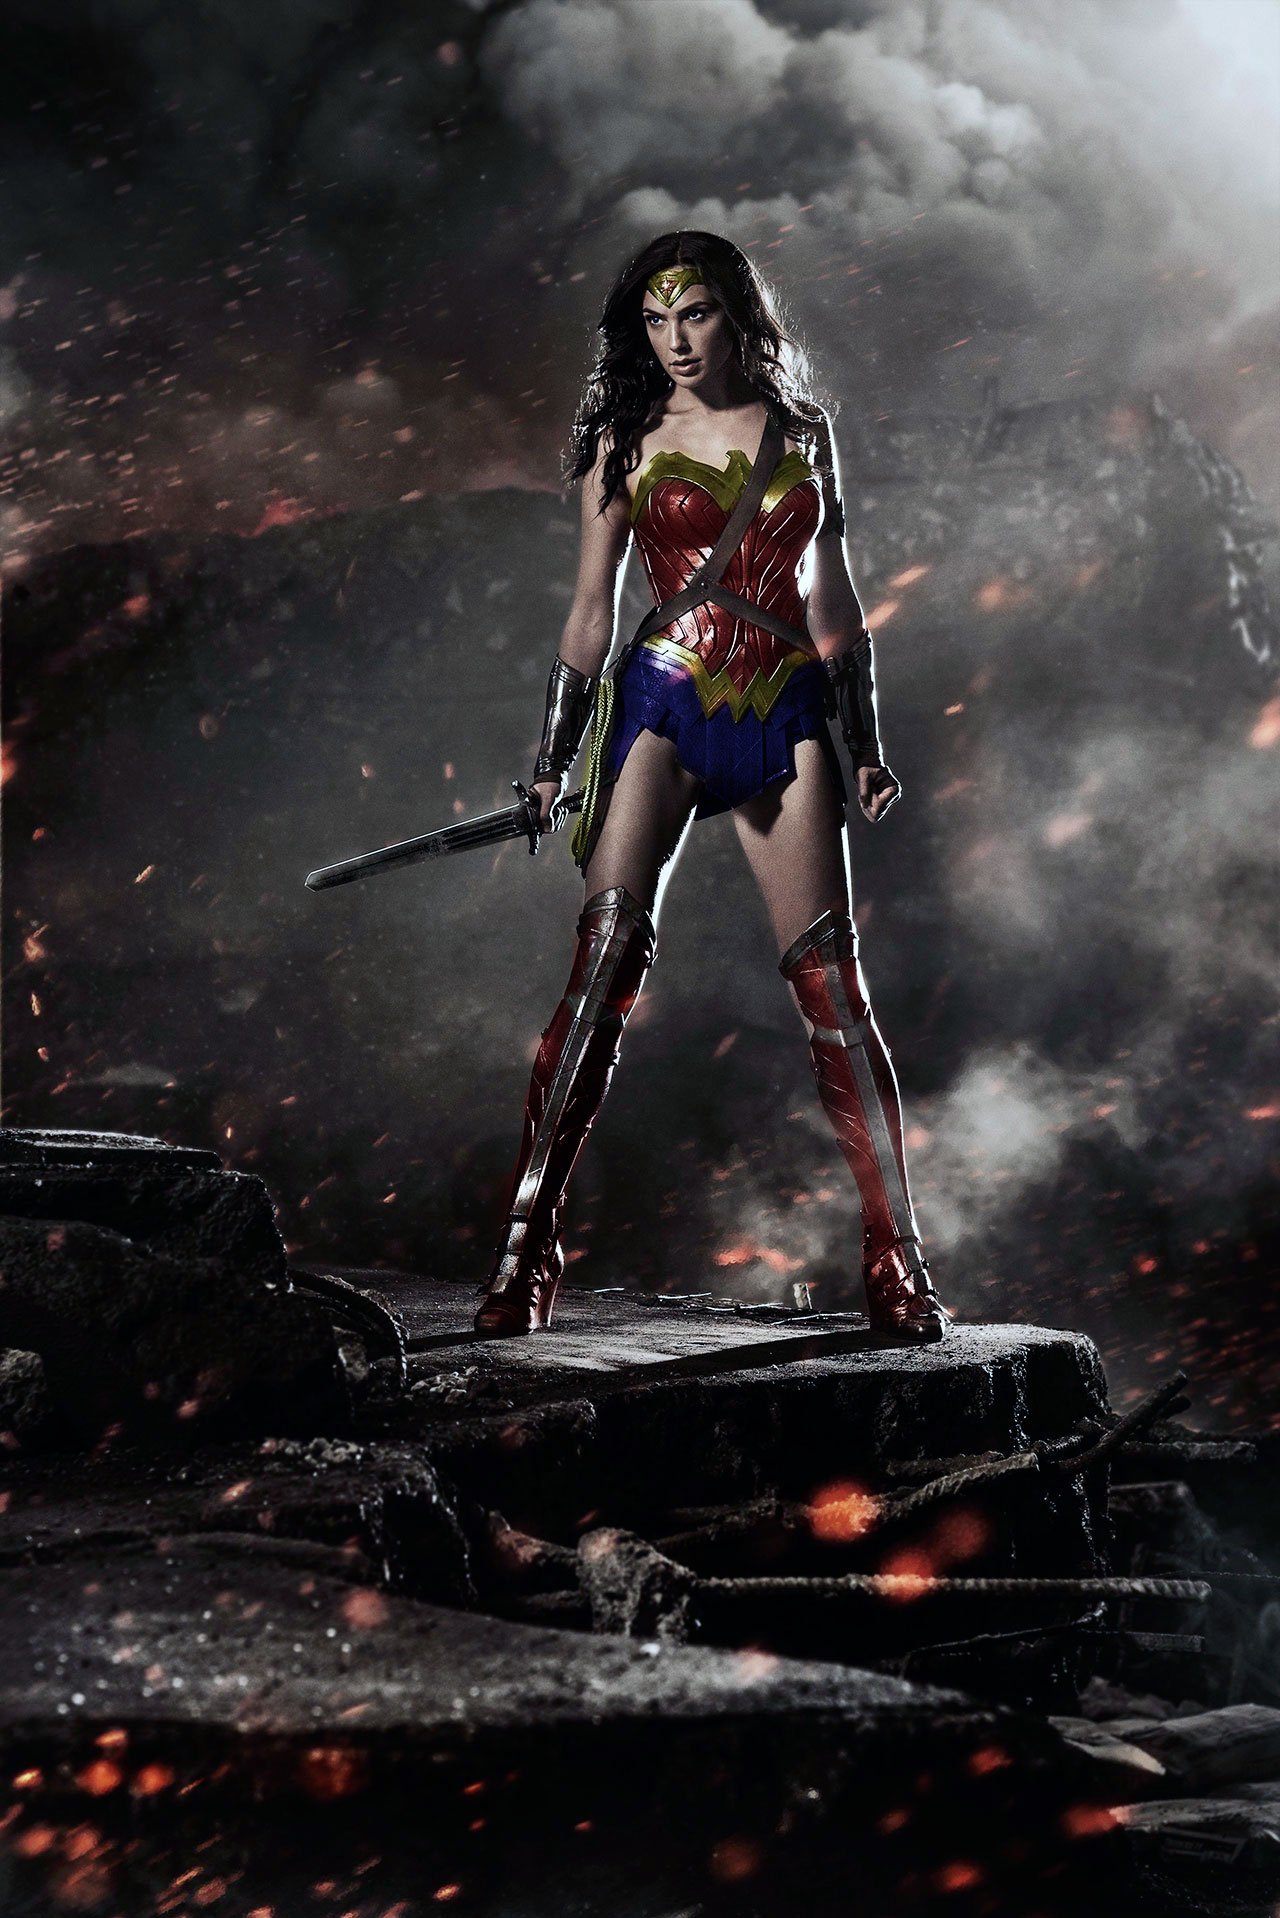 Gal Gadot as Wonder Woman with color